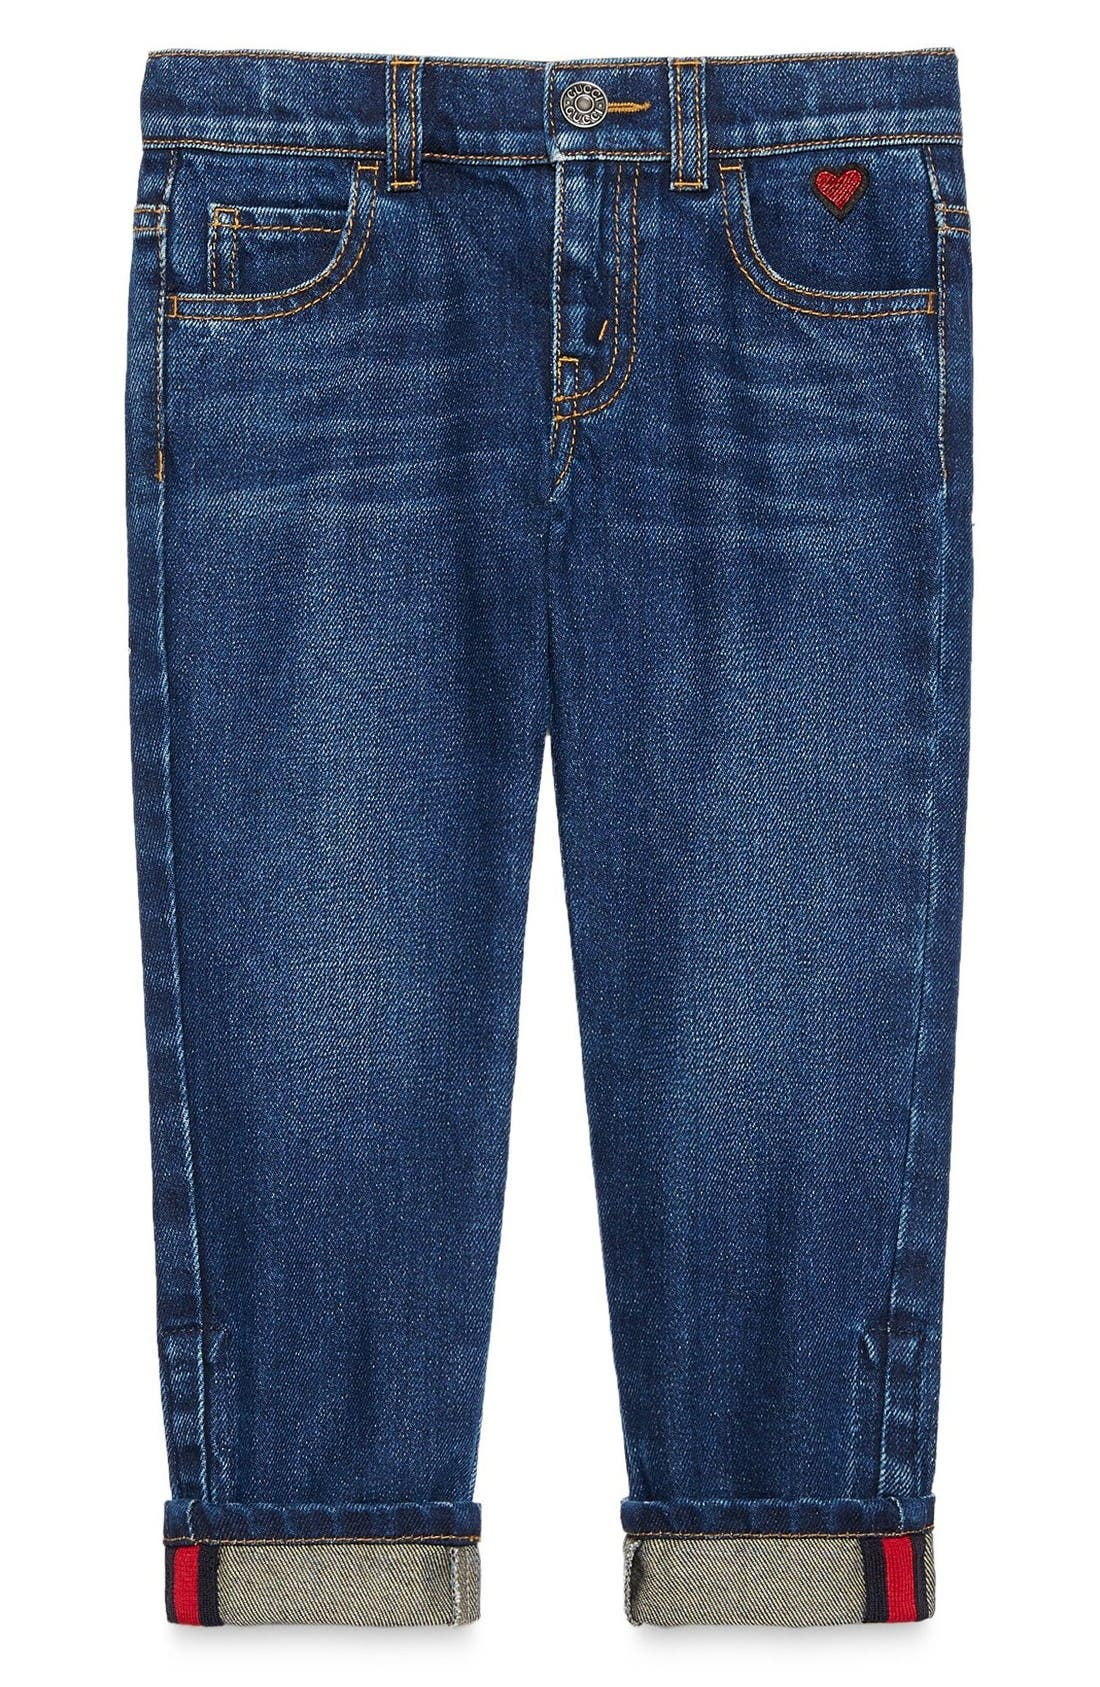 Gucci Cuffed Jeans (Little Girls & Big Girls)